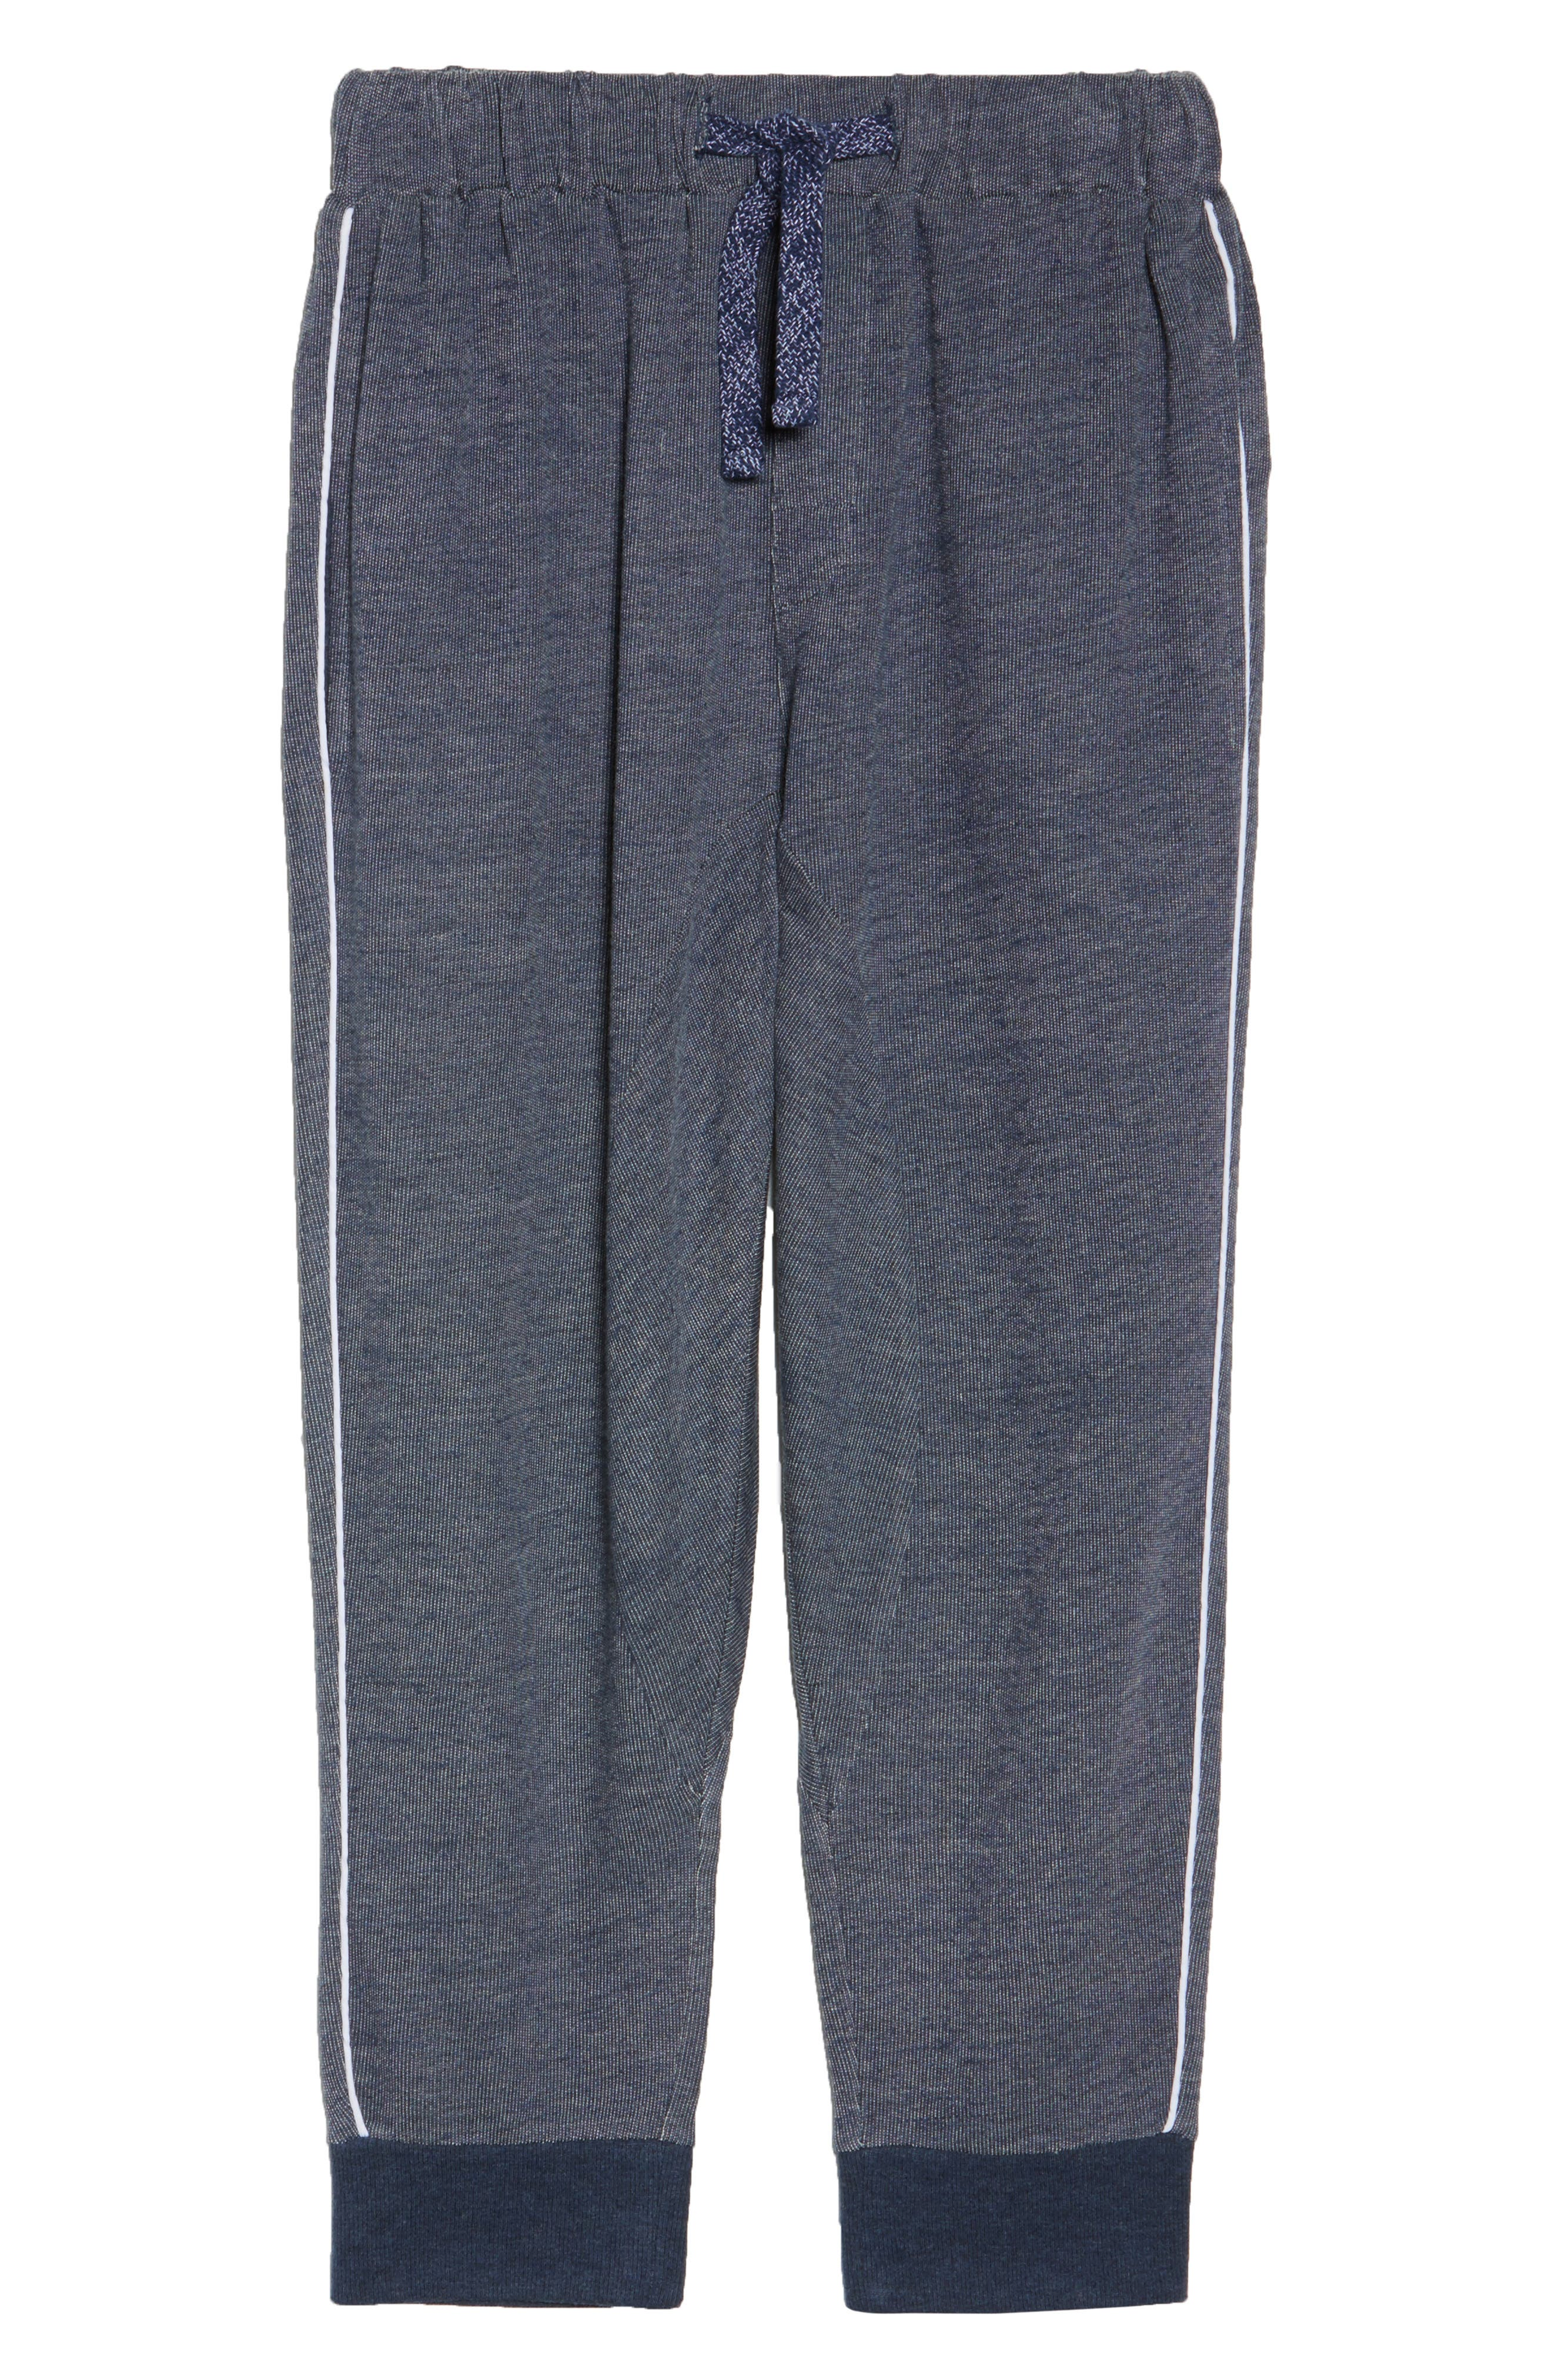 Steff Crop Lounge Pants,                             Alternate thumbnail 4, color,                             Midnight Marle